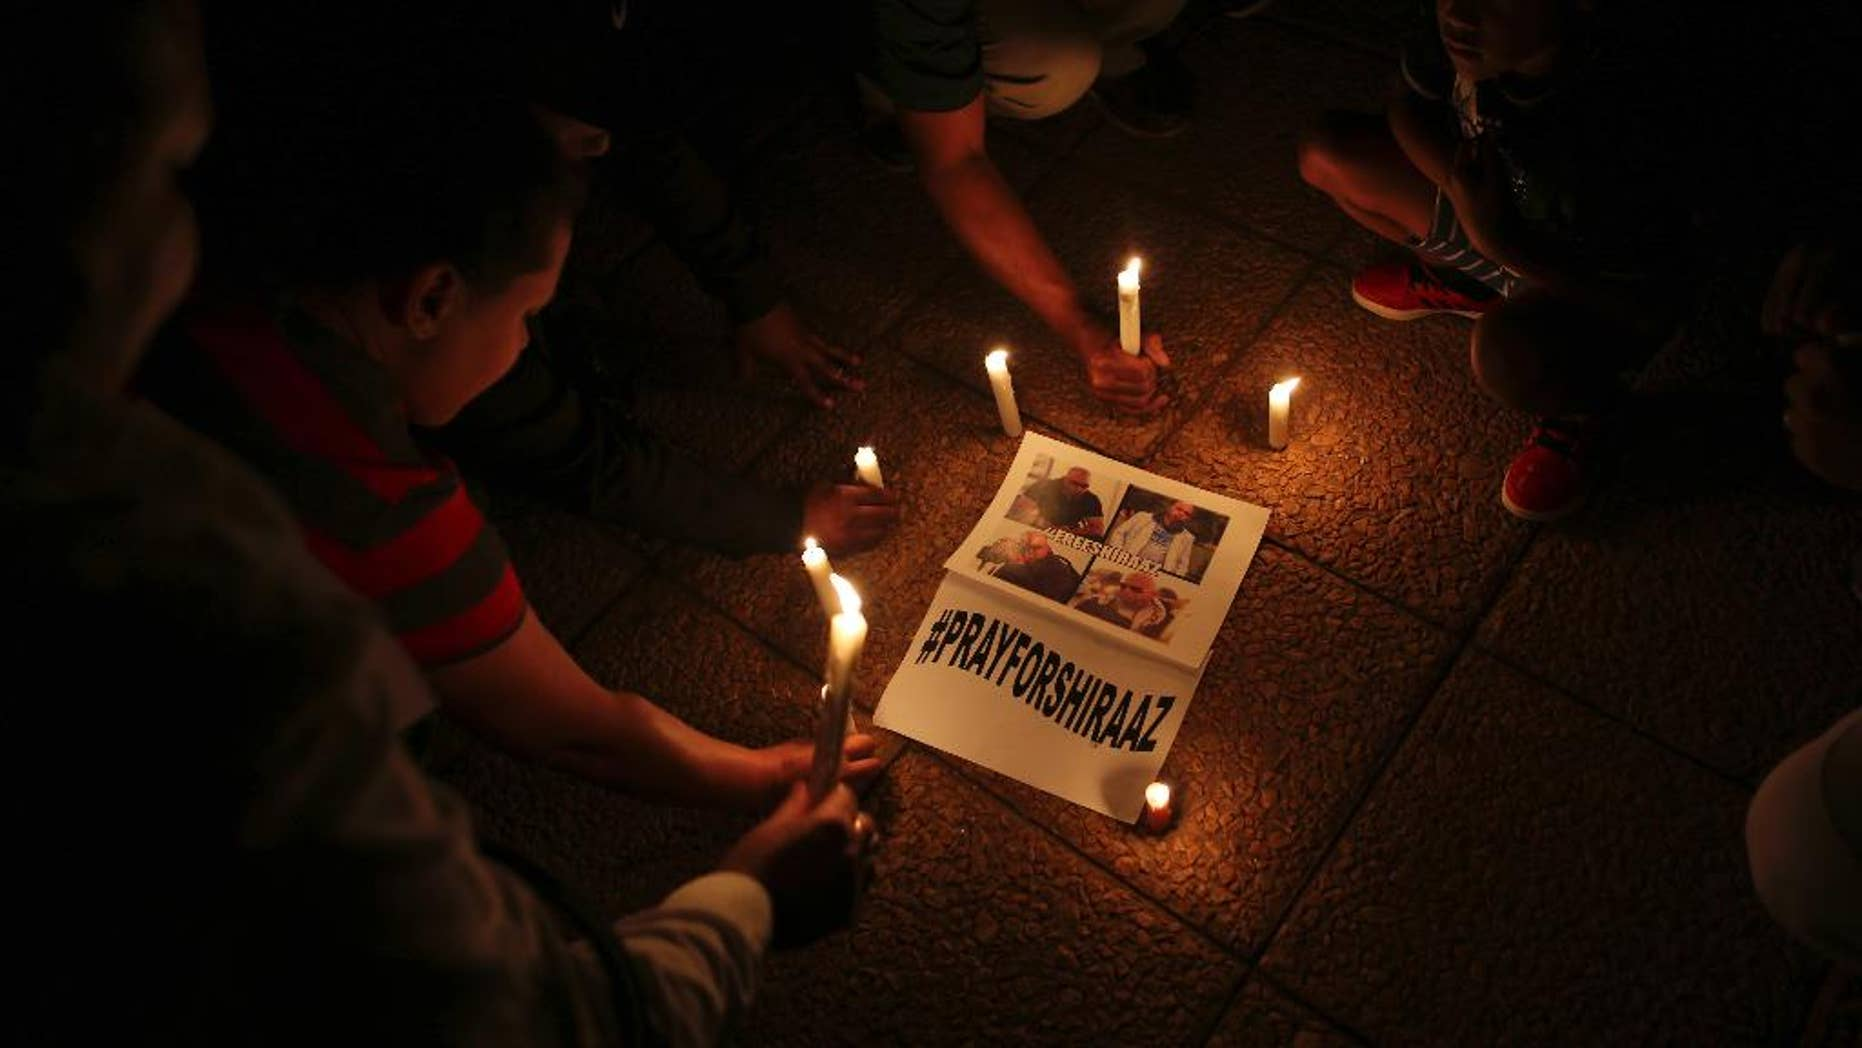 South Africans light candles during a vigil held in Johannesburg Wednesday, Jan. 18, 2017, for South African freelance photographer Shiraaz Mohamed who was abducted in Syria last week. People prayed and held signs calling for the safe return of Mohamed who was kidnapped on Jan. 10, while traveling with aid workers to Syria's border with Turkey. (AP Photo/Denis Farrell)